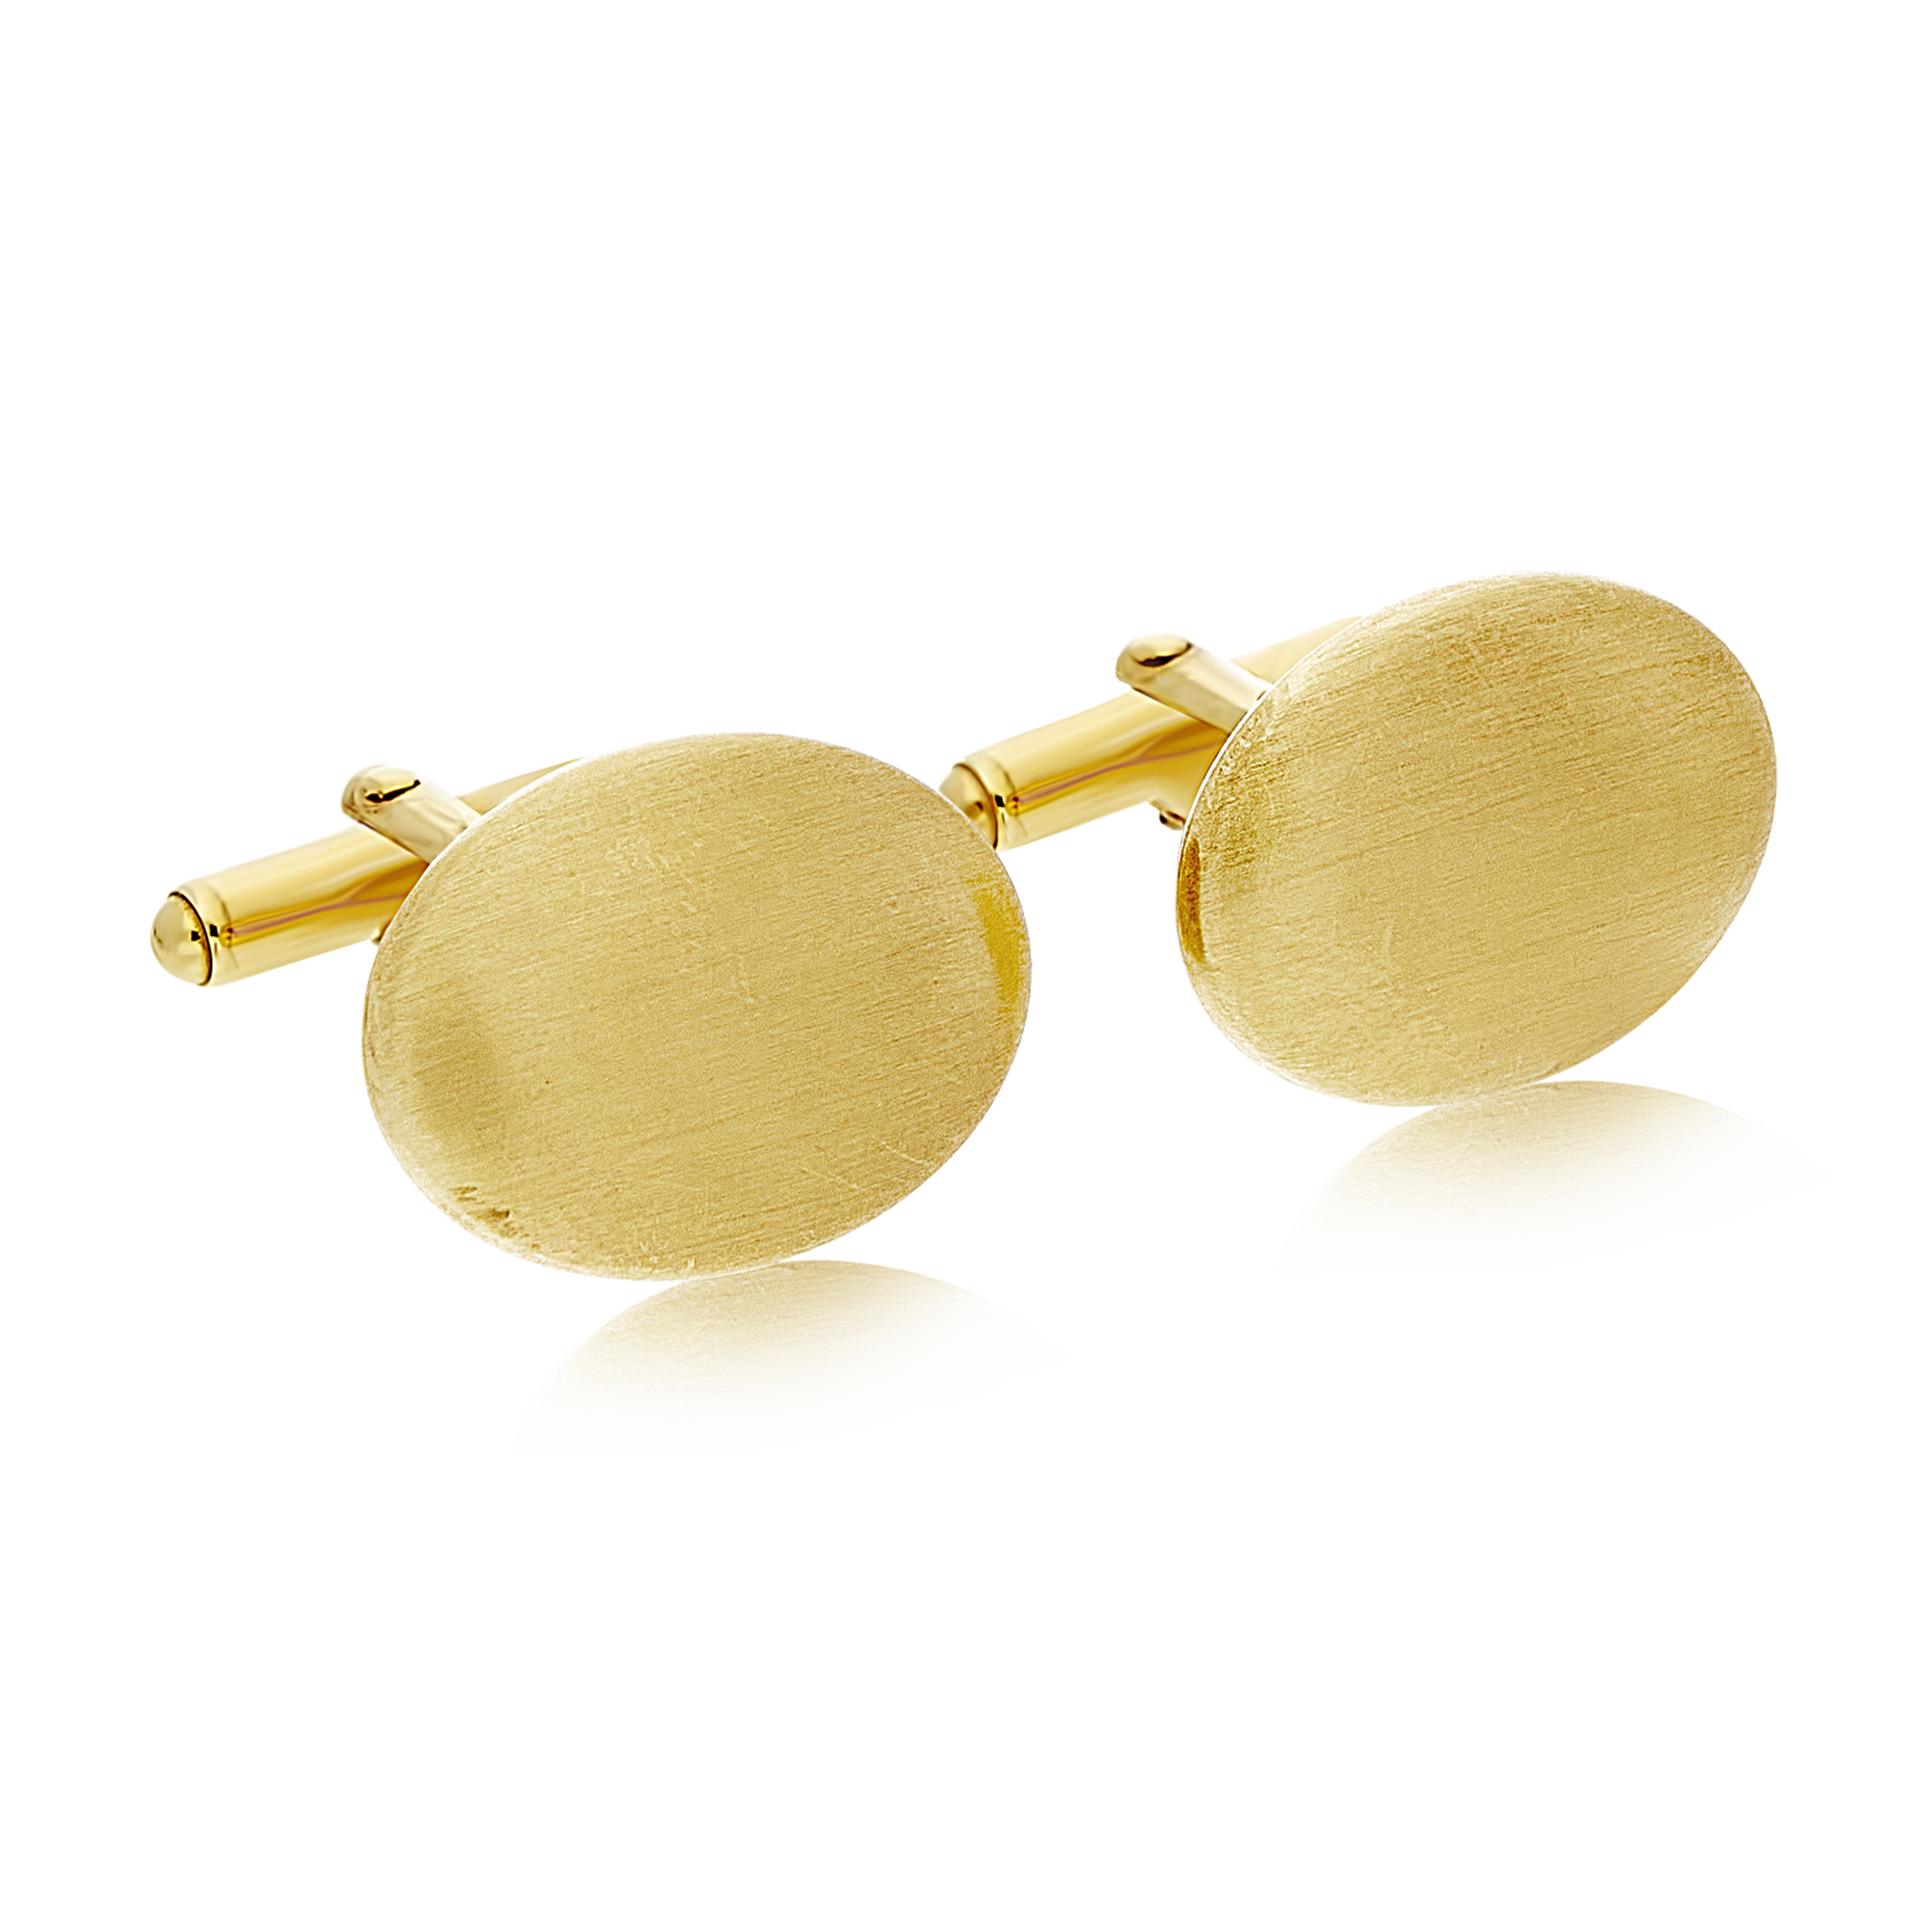 Gold Cufflinks with Matte Finish